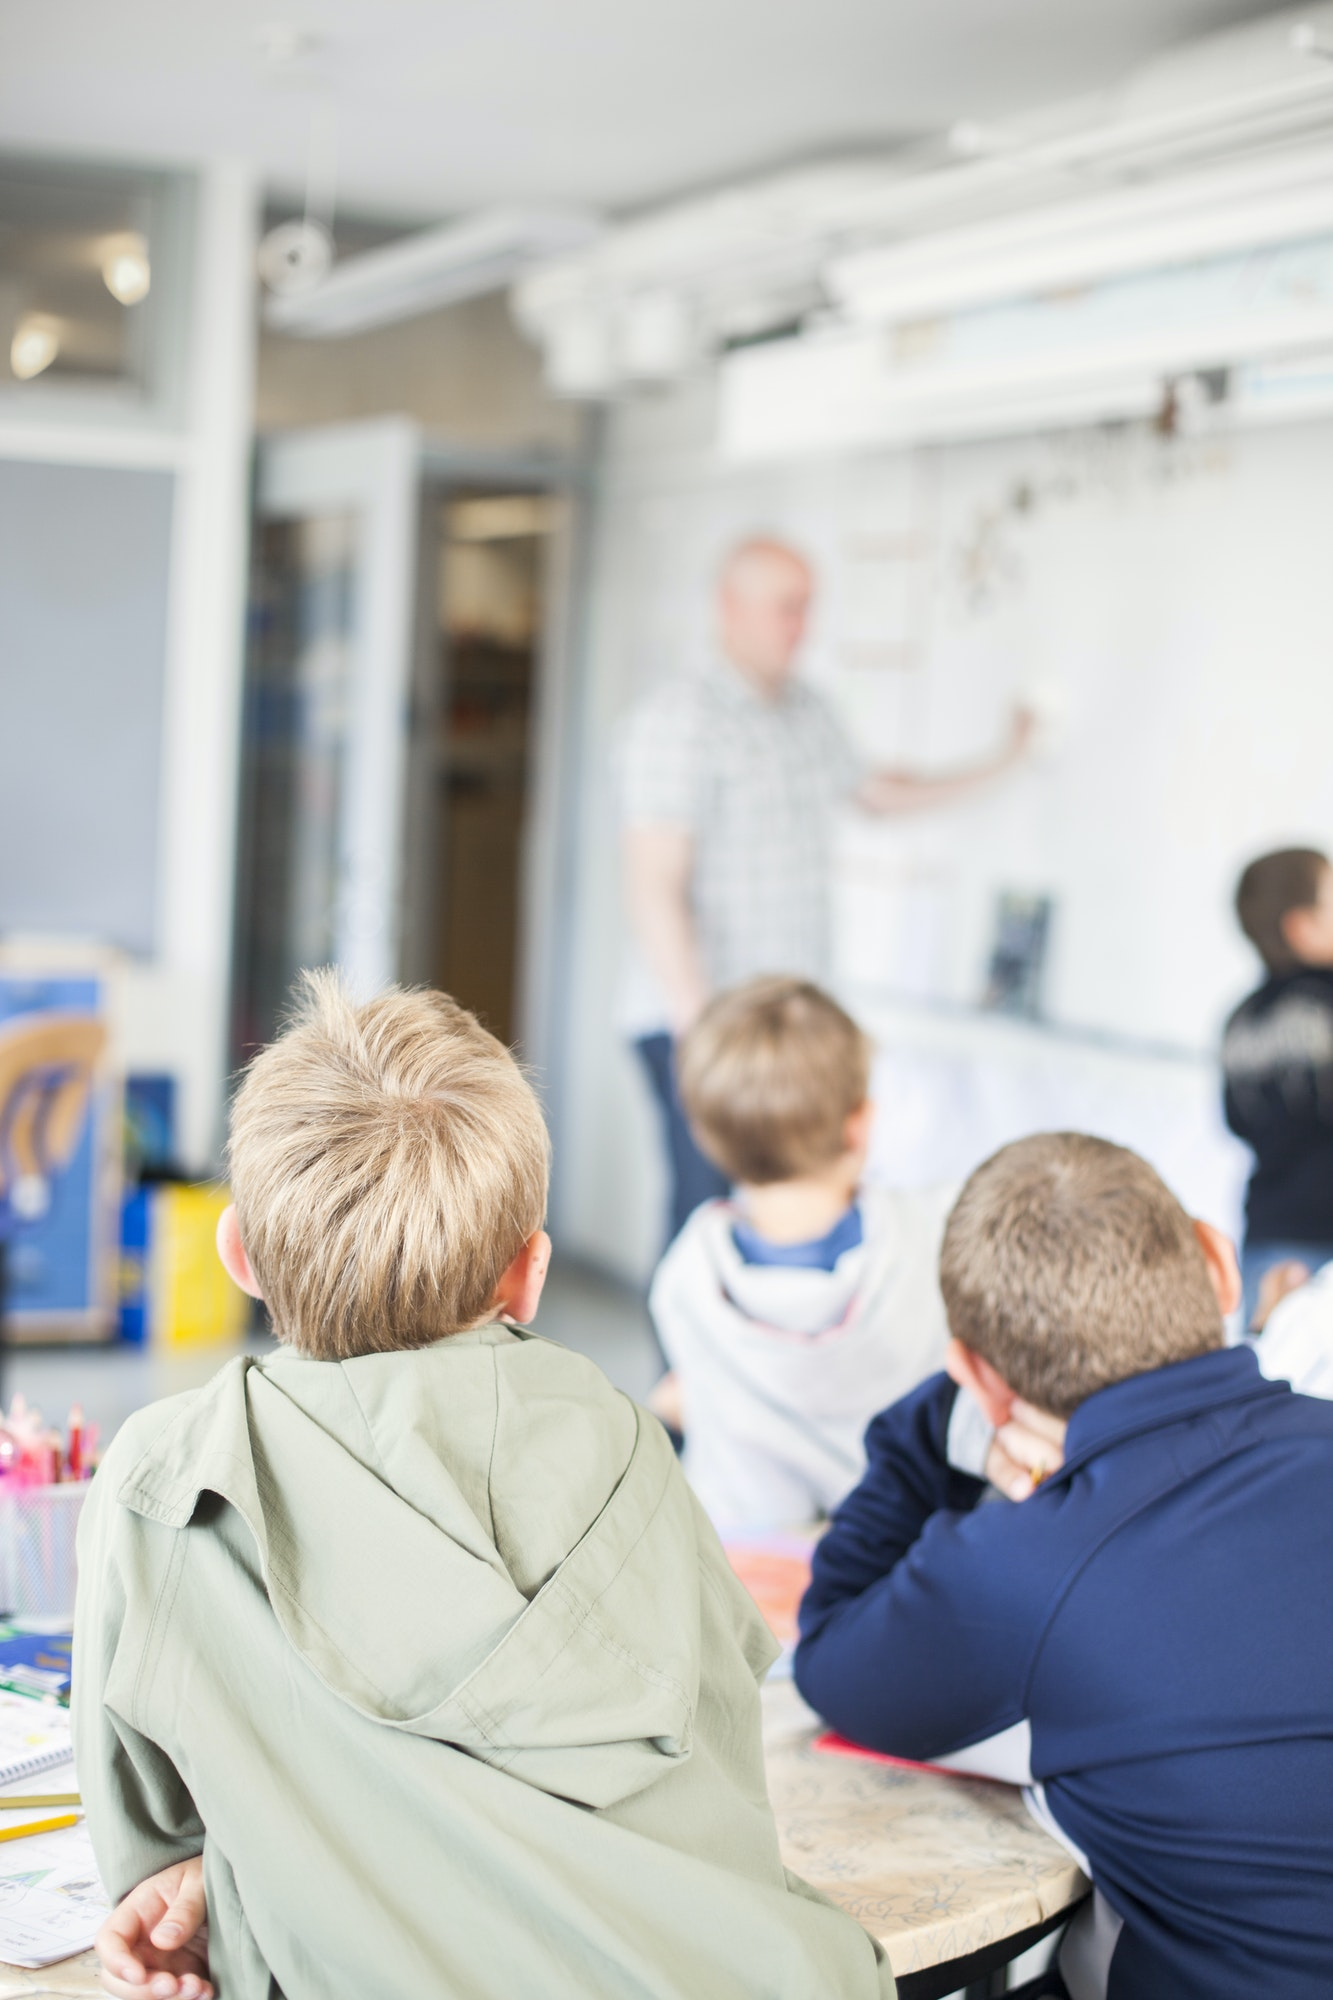 Children looking at teacher during lecture in classroom